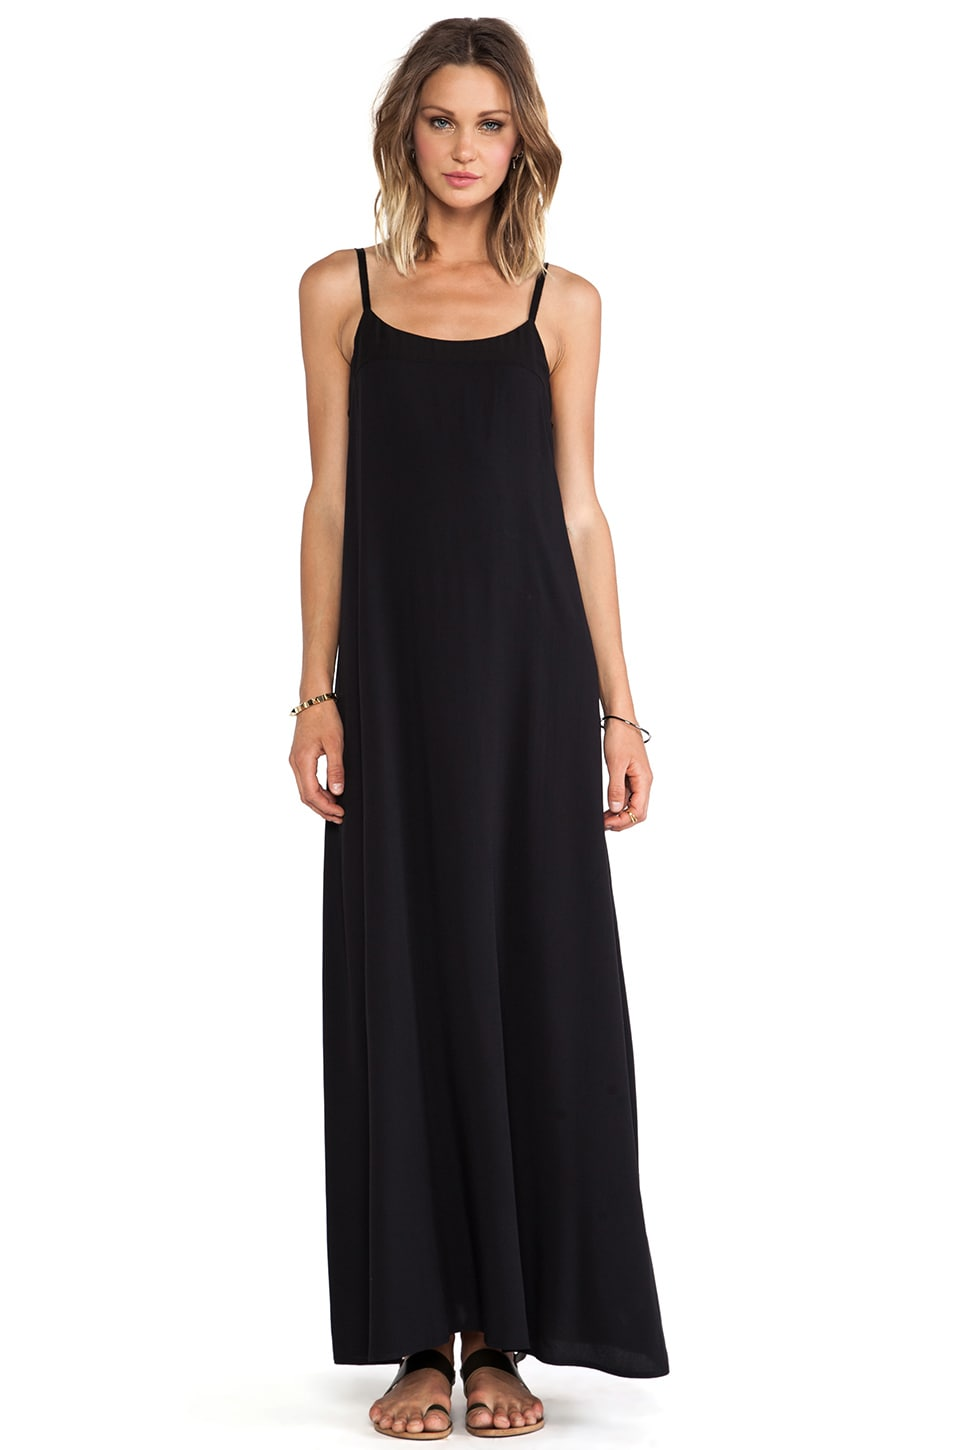 AG Adriano Goldschmied Interval Maxi Dress in True Black